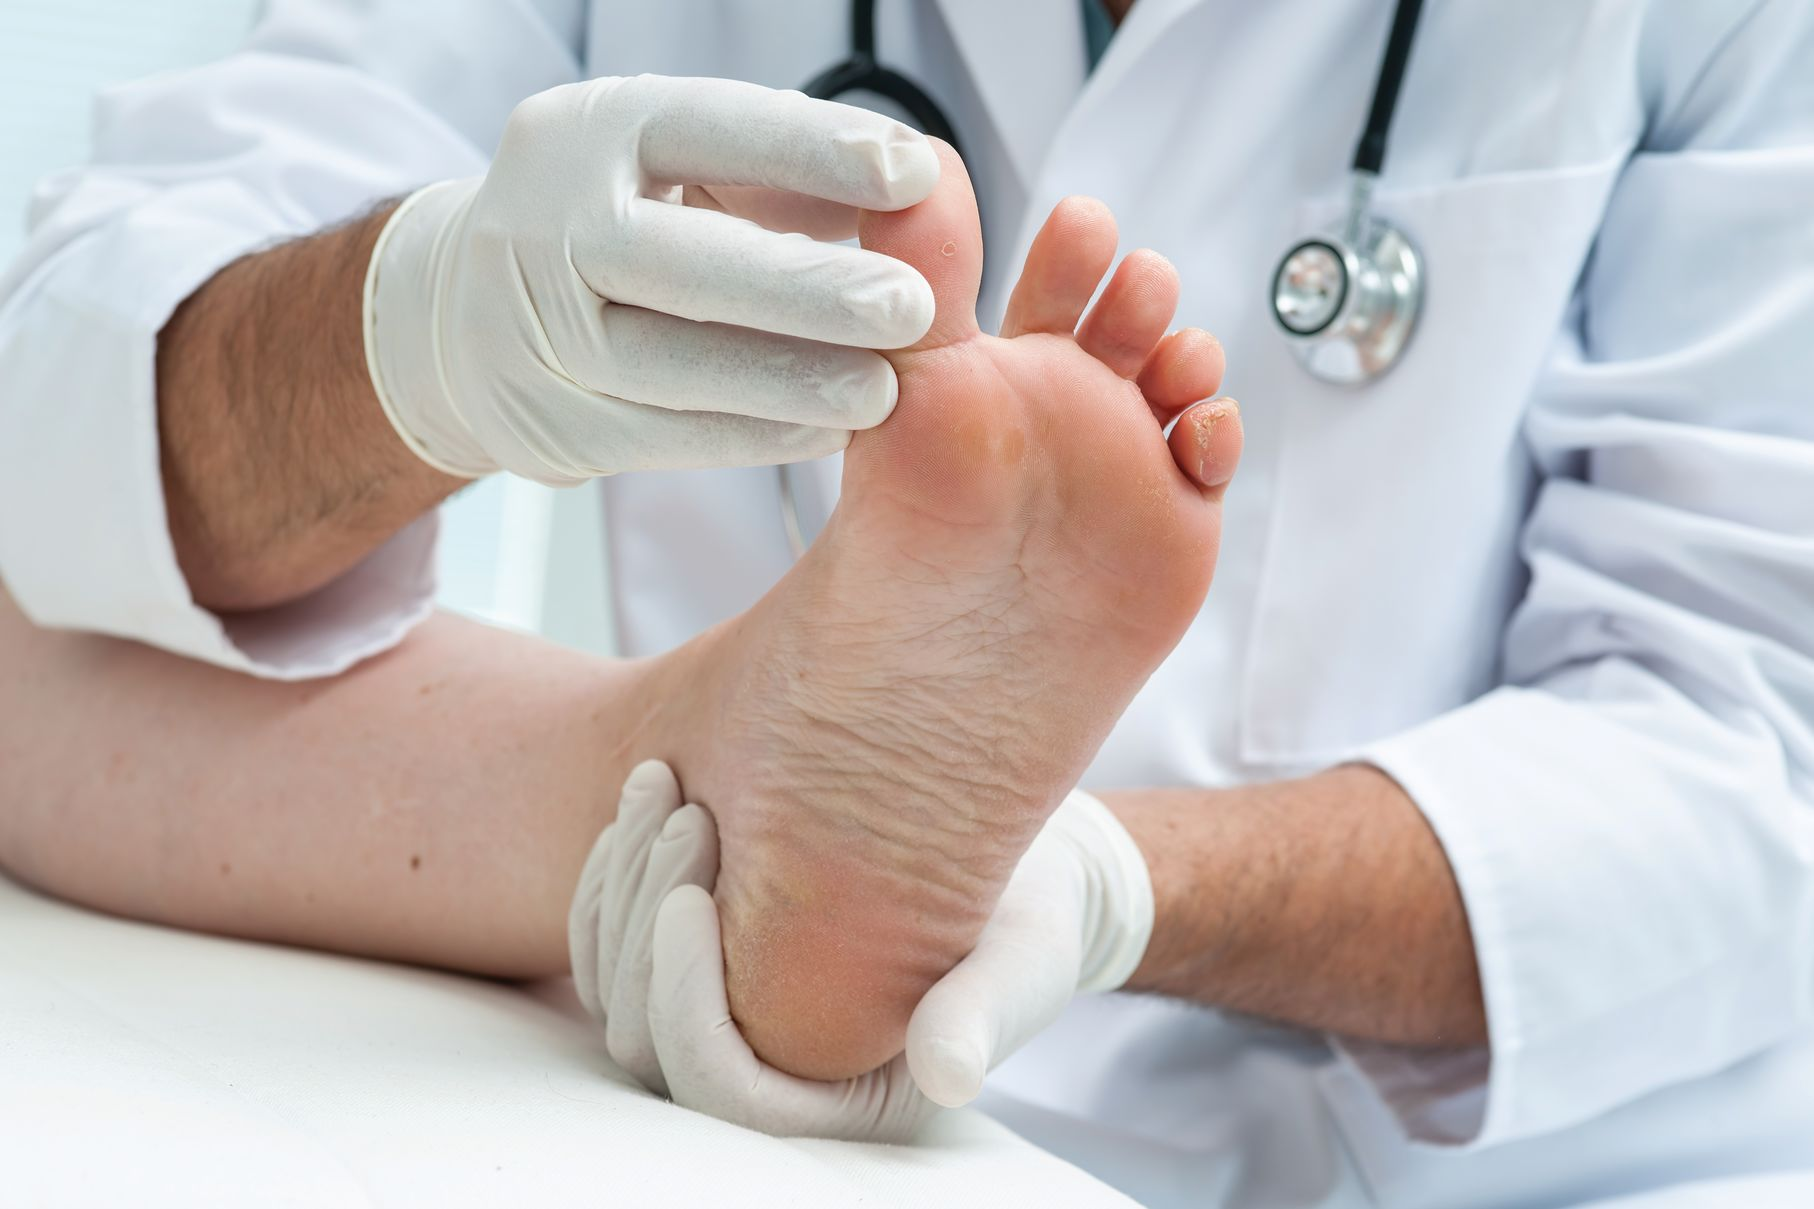 A podiatrist looks at a foot